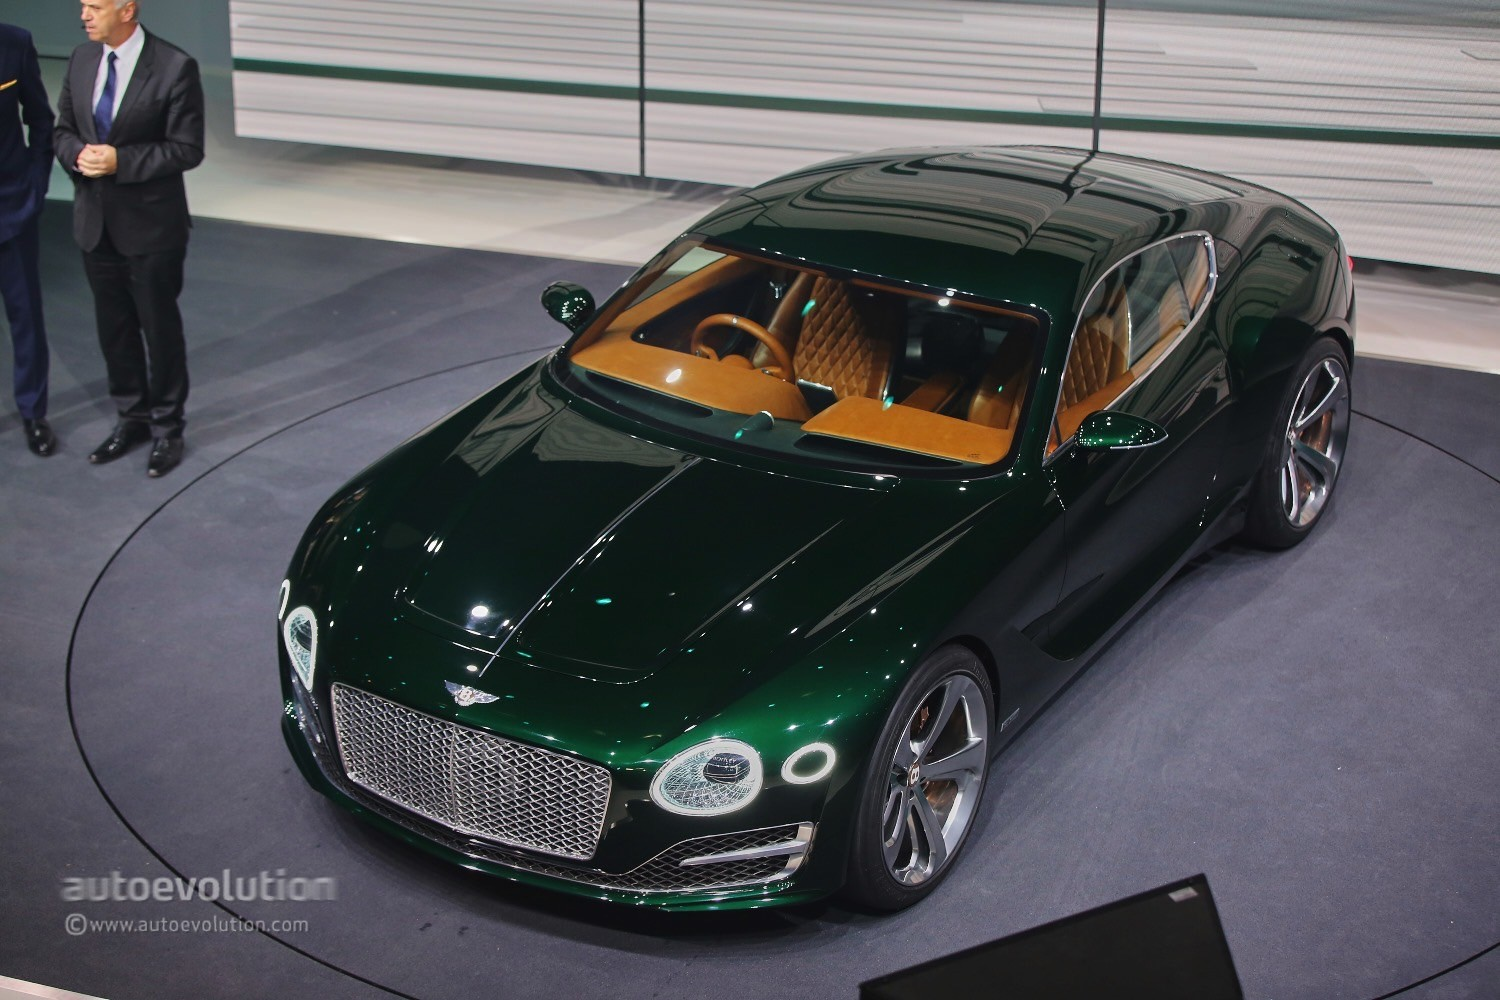 Bentley Flying Spur Modified >> Bentley EXP 10 Speed 6 Black Edition Rendered as the 2018 Continental GT - autoevolution